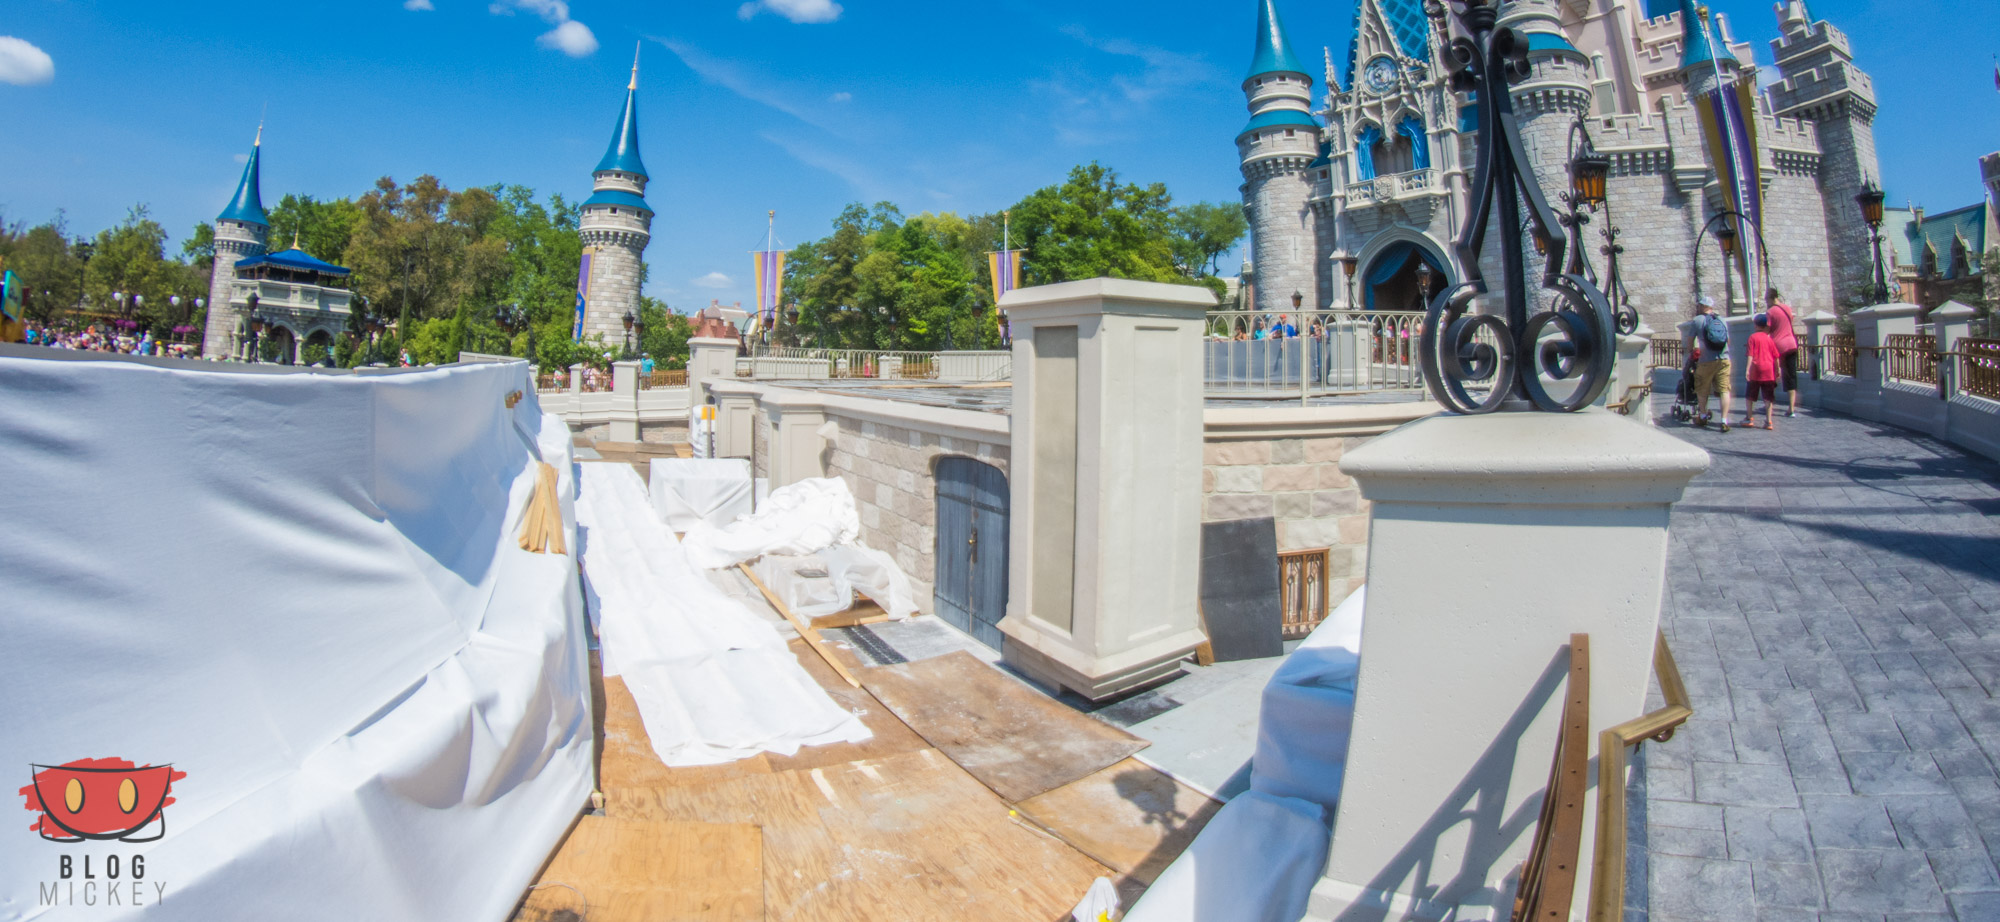 MagicKingdom_CenterStage_04122016-2